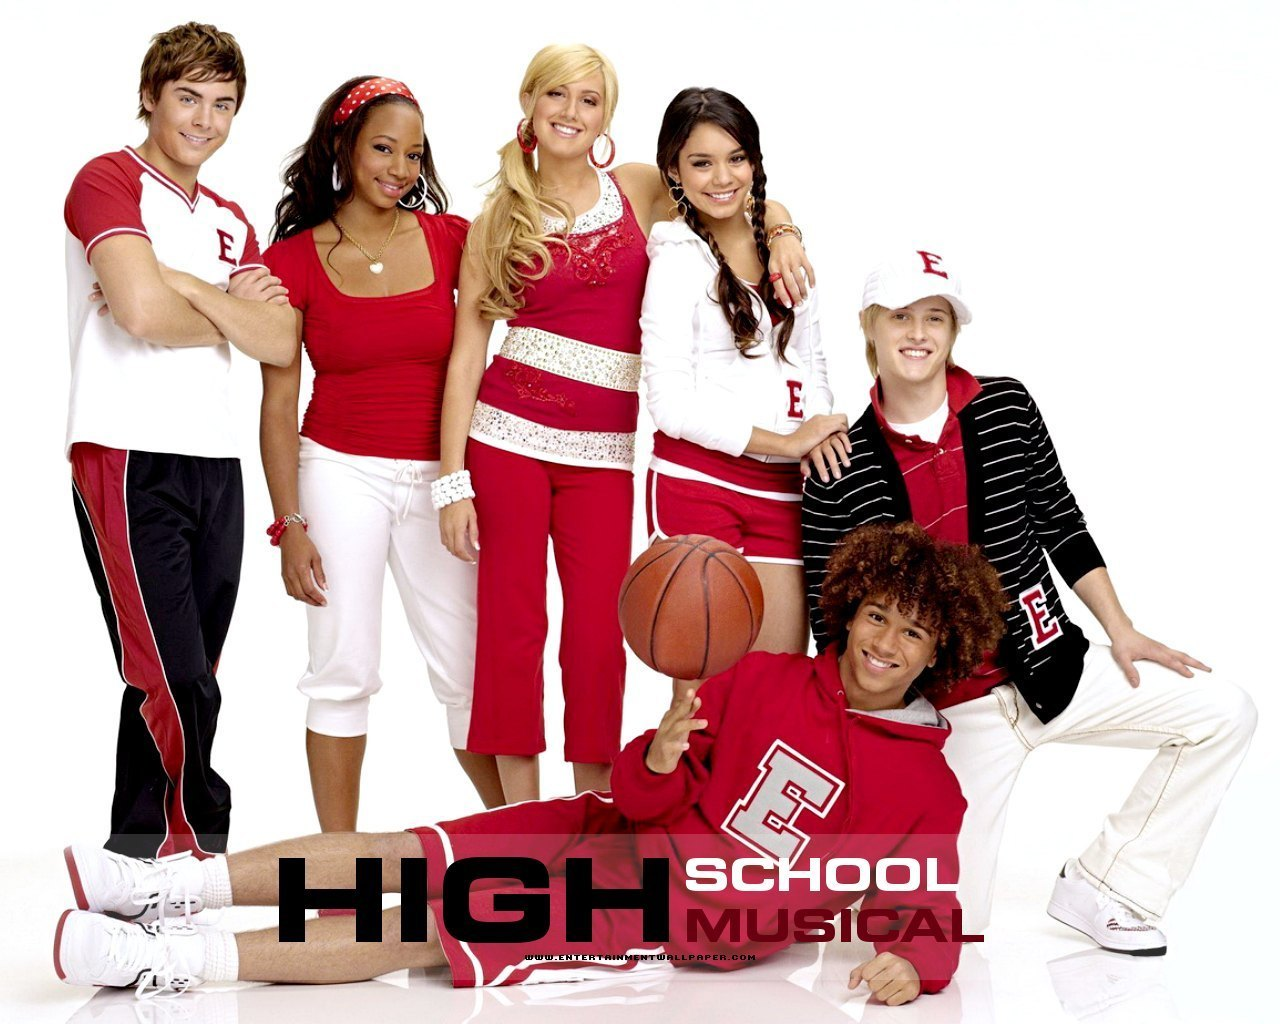 72] High School Musical Wallpaper on WallpaperSafari 1280x1024